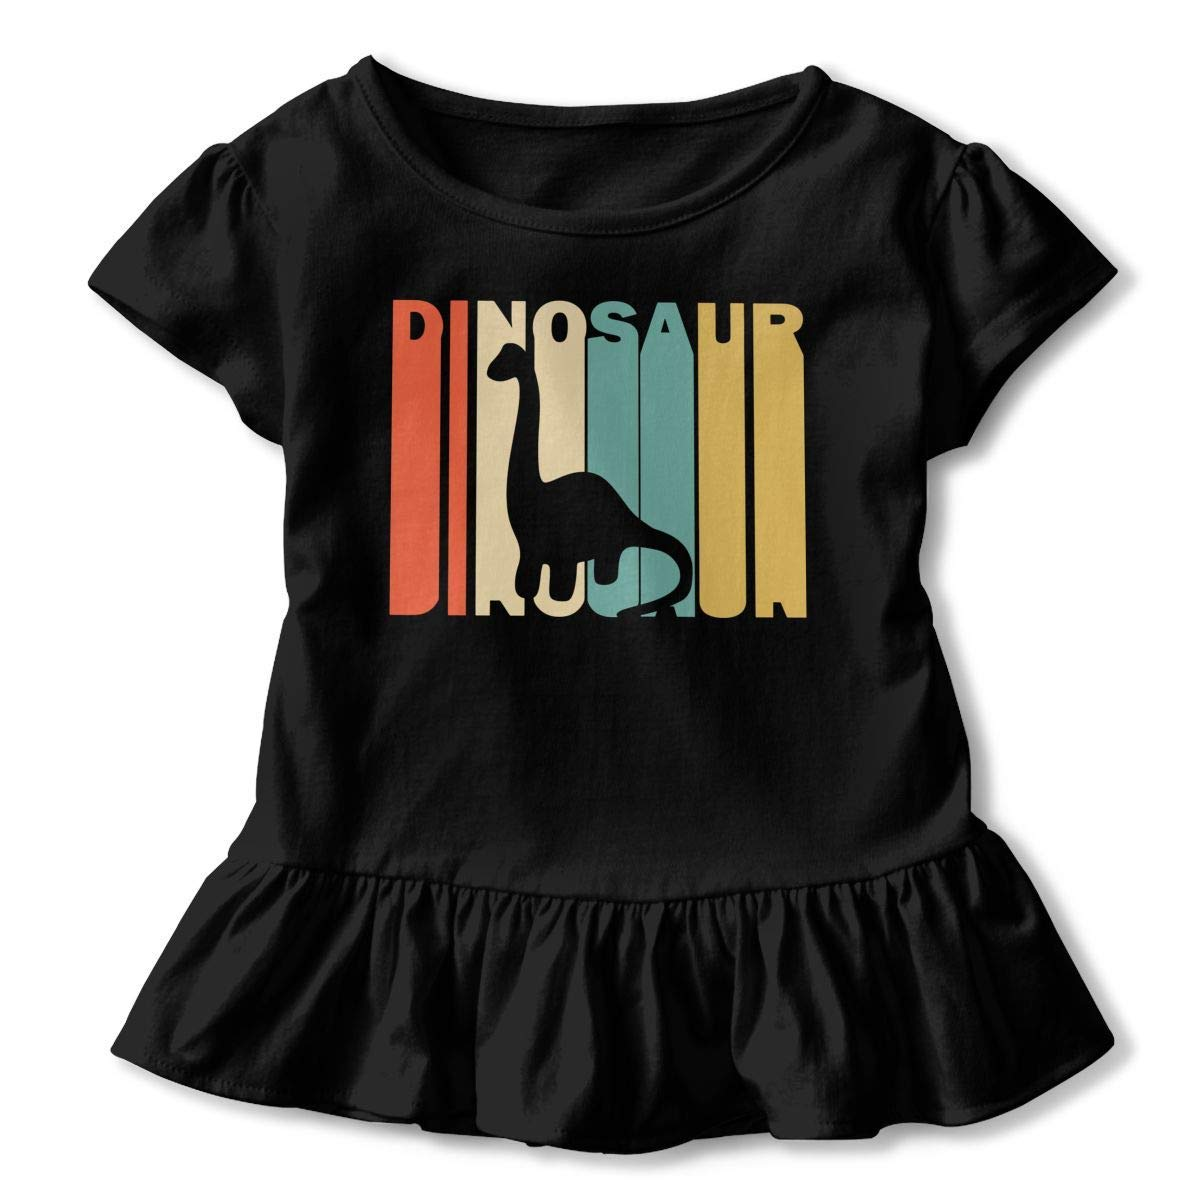 2-6T Short Sleeve Retro Style Dinosaur Silhouette Shirts for Children Cute Tunic Tops with Falbala